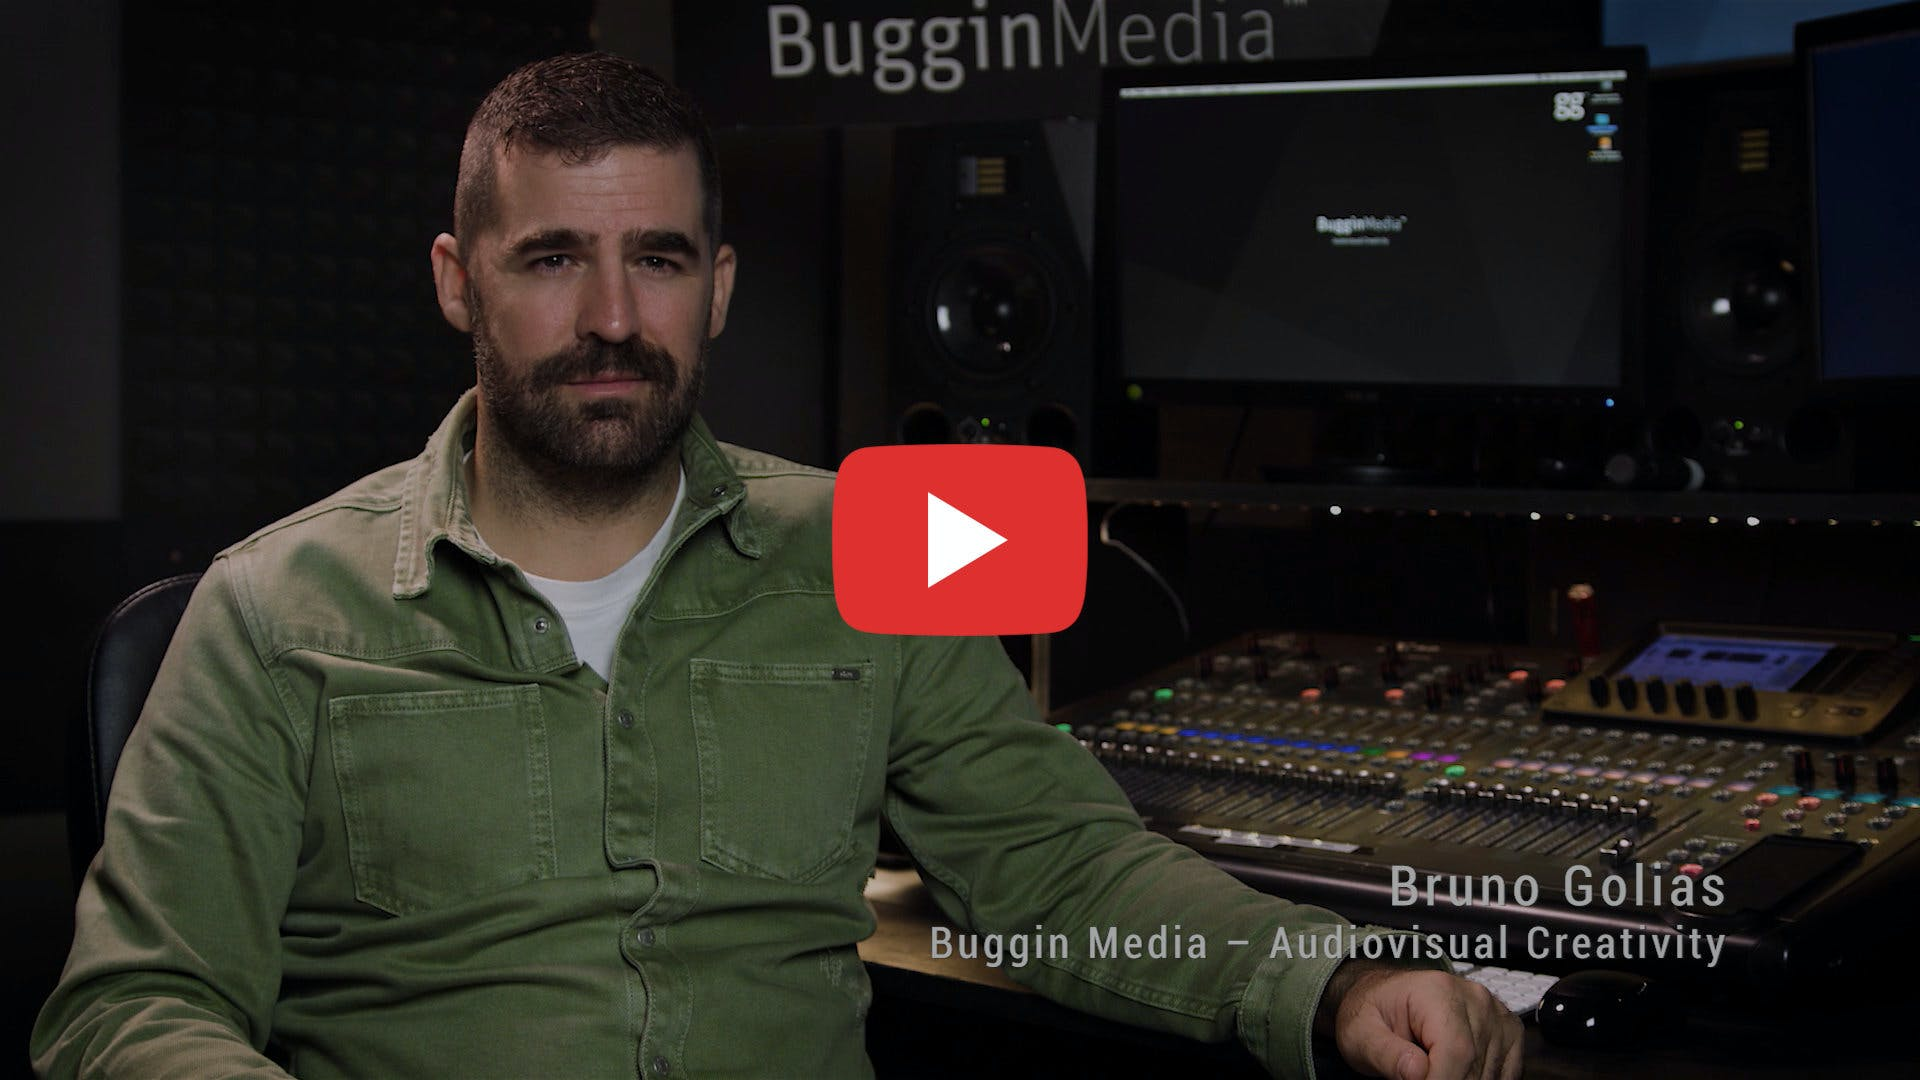 Buggin Media on directing voice talent remotely